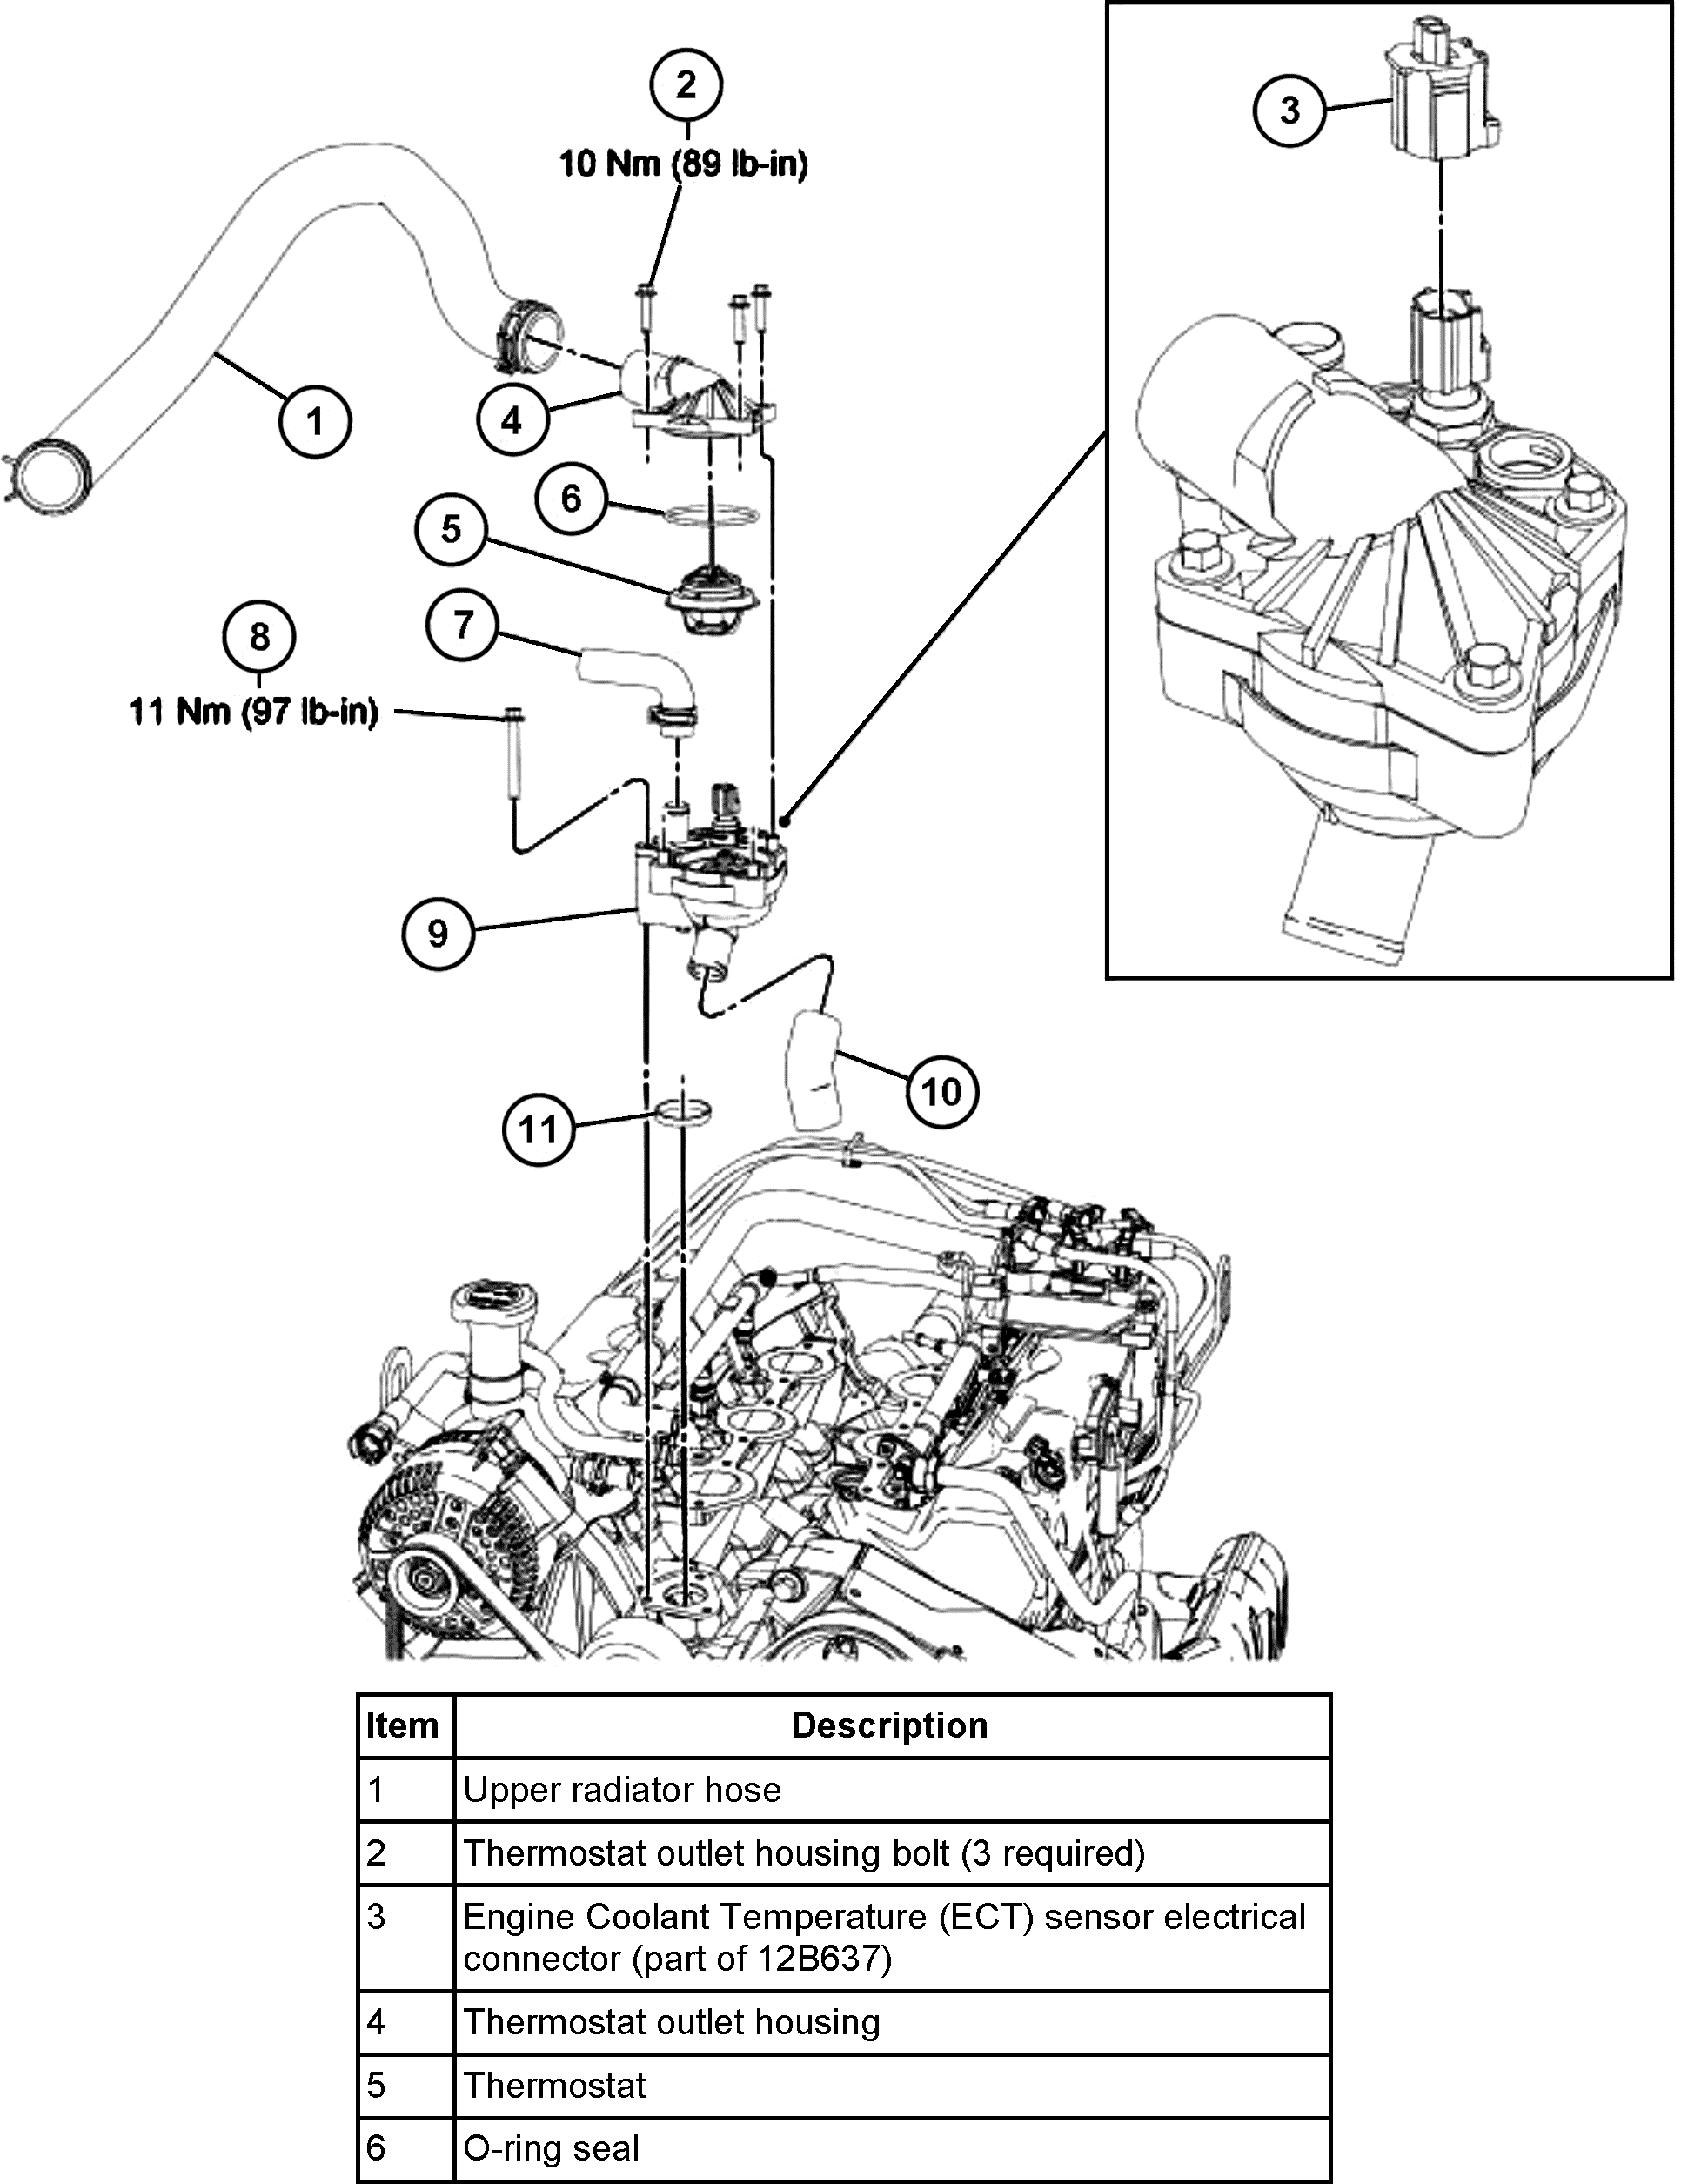 [DIAGRAM] 1994 Ford Ranger 4 0 Engine Diagram FULL Version